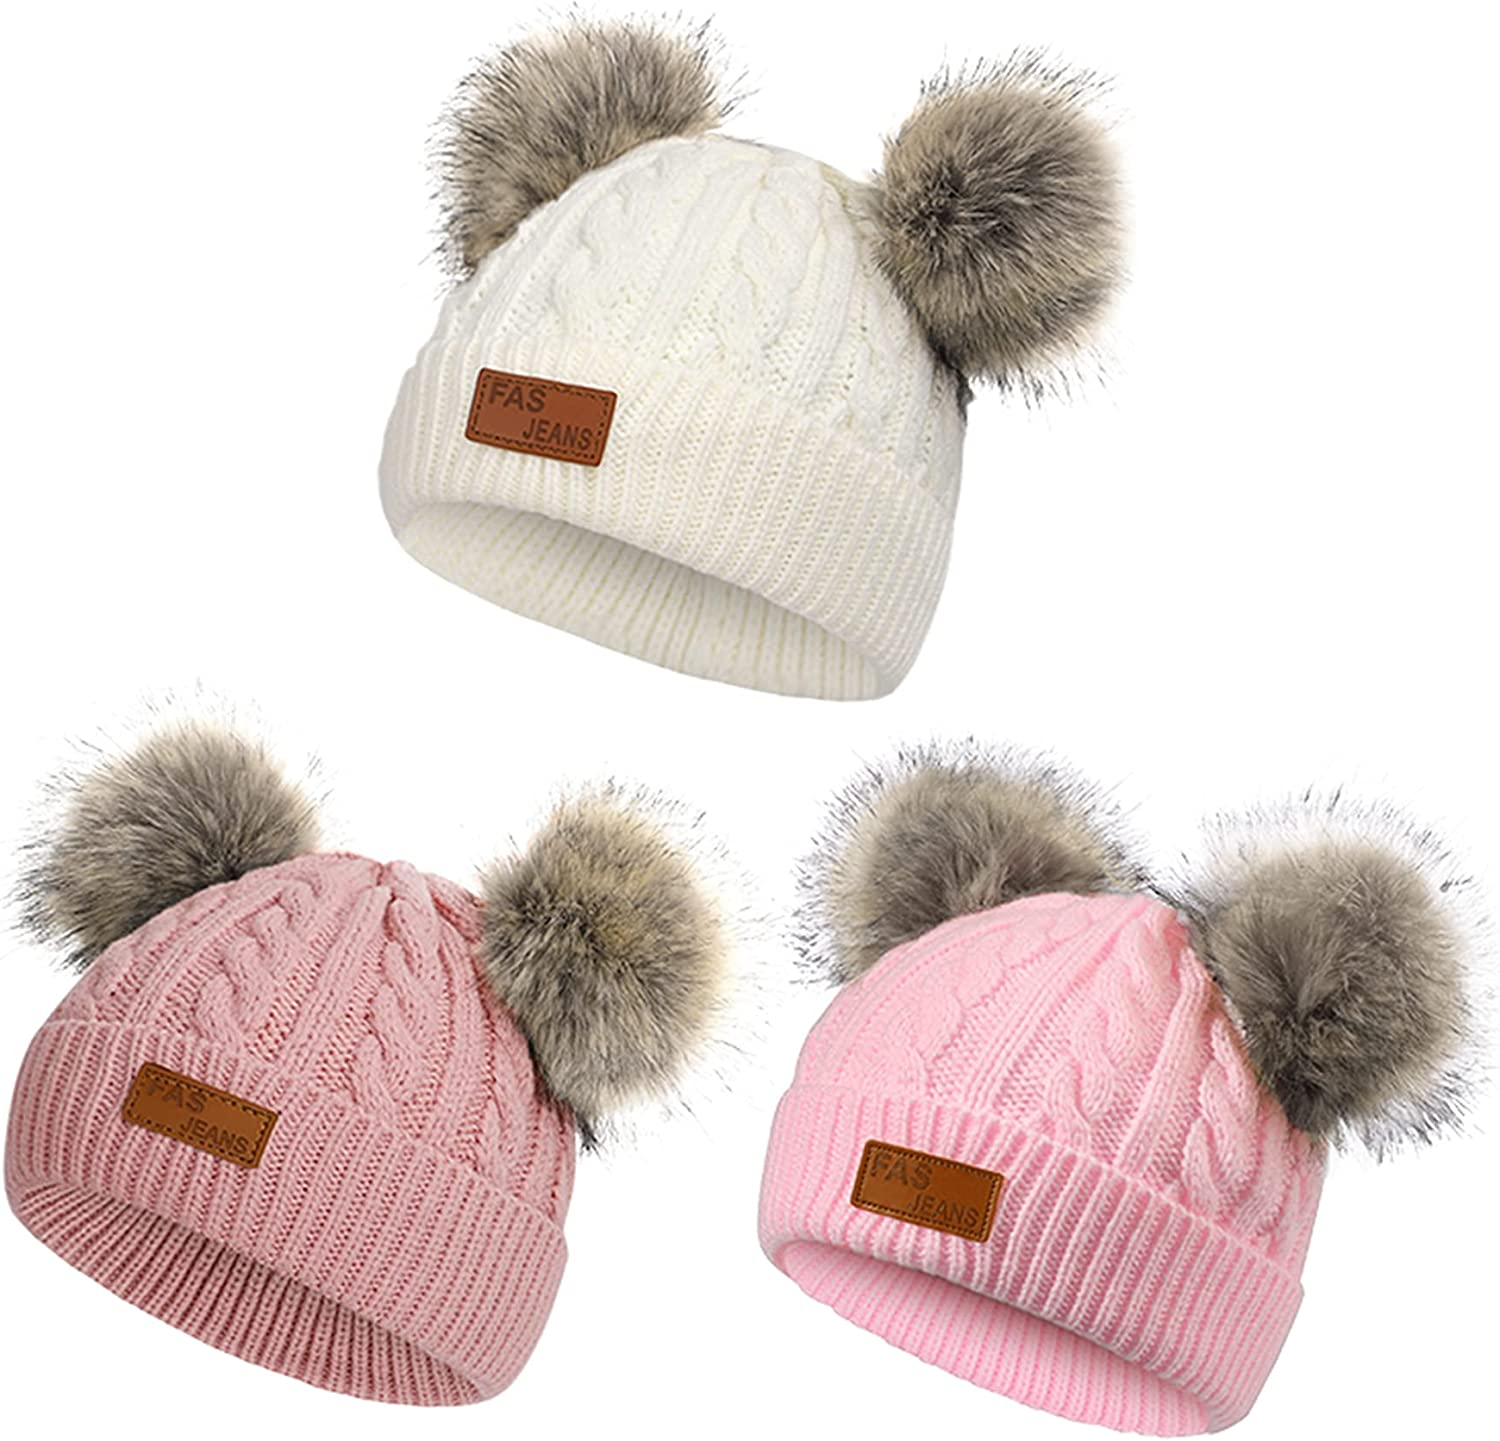 American Trends Toddler Hats Beanies for Girls Boys Kids Winter Warm Hat with Double Pompom Cute Knit Thick Baby Cap 3 Pack White & Deep Pink & Light Pink 2-8 Years: Clothing, Shoes & Jewelry